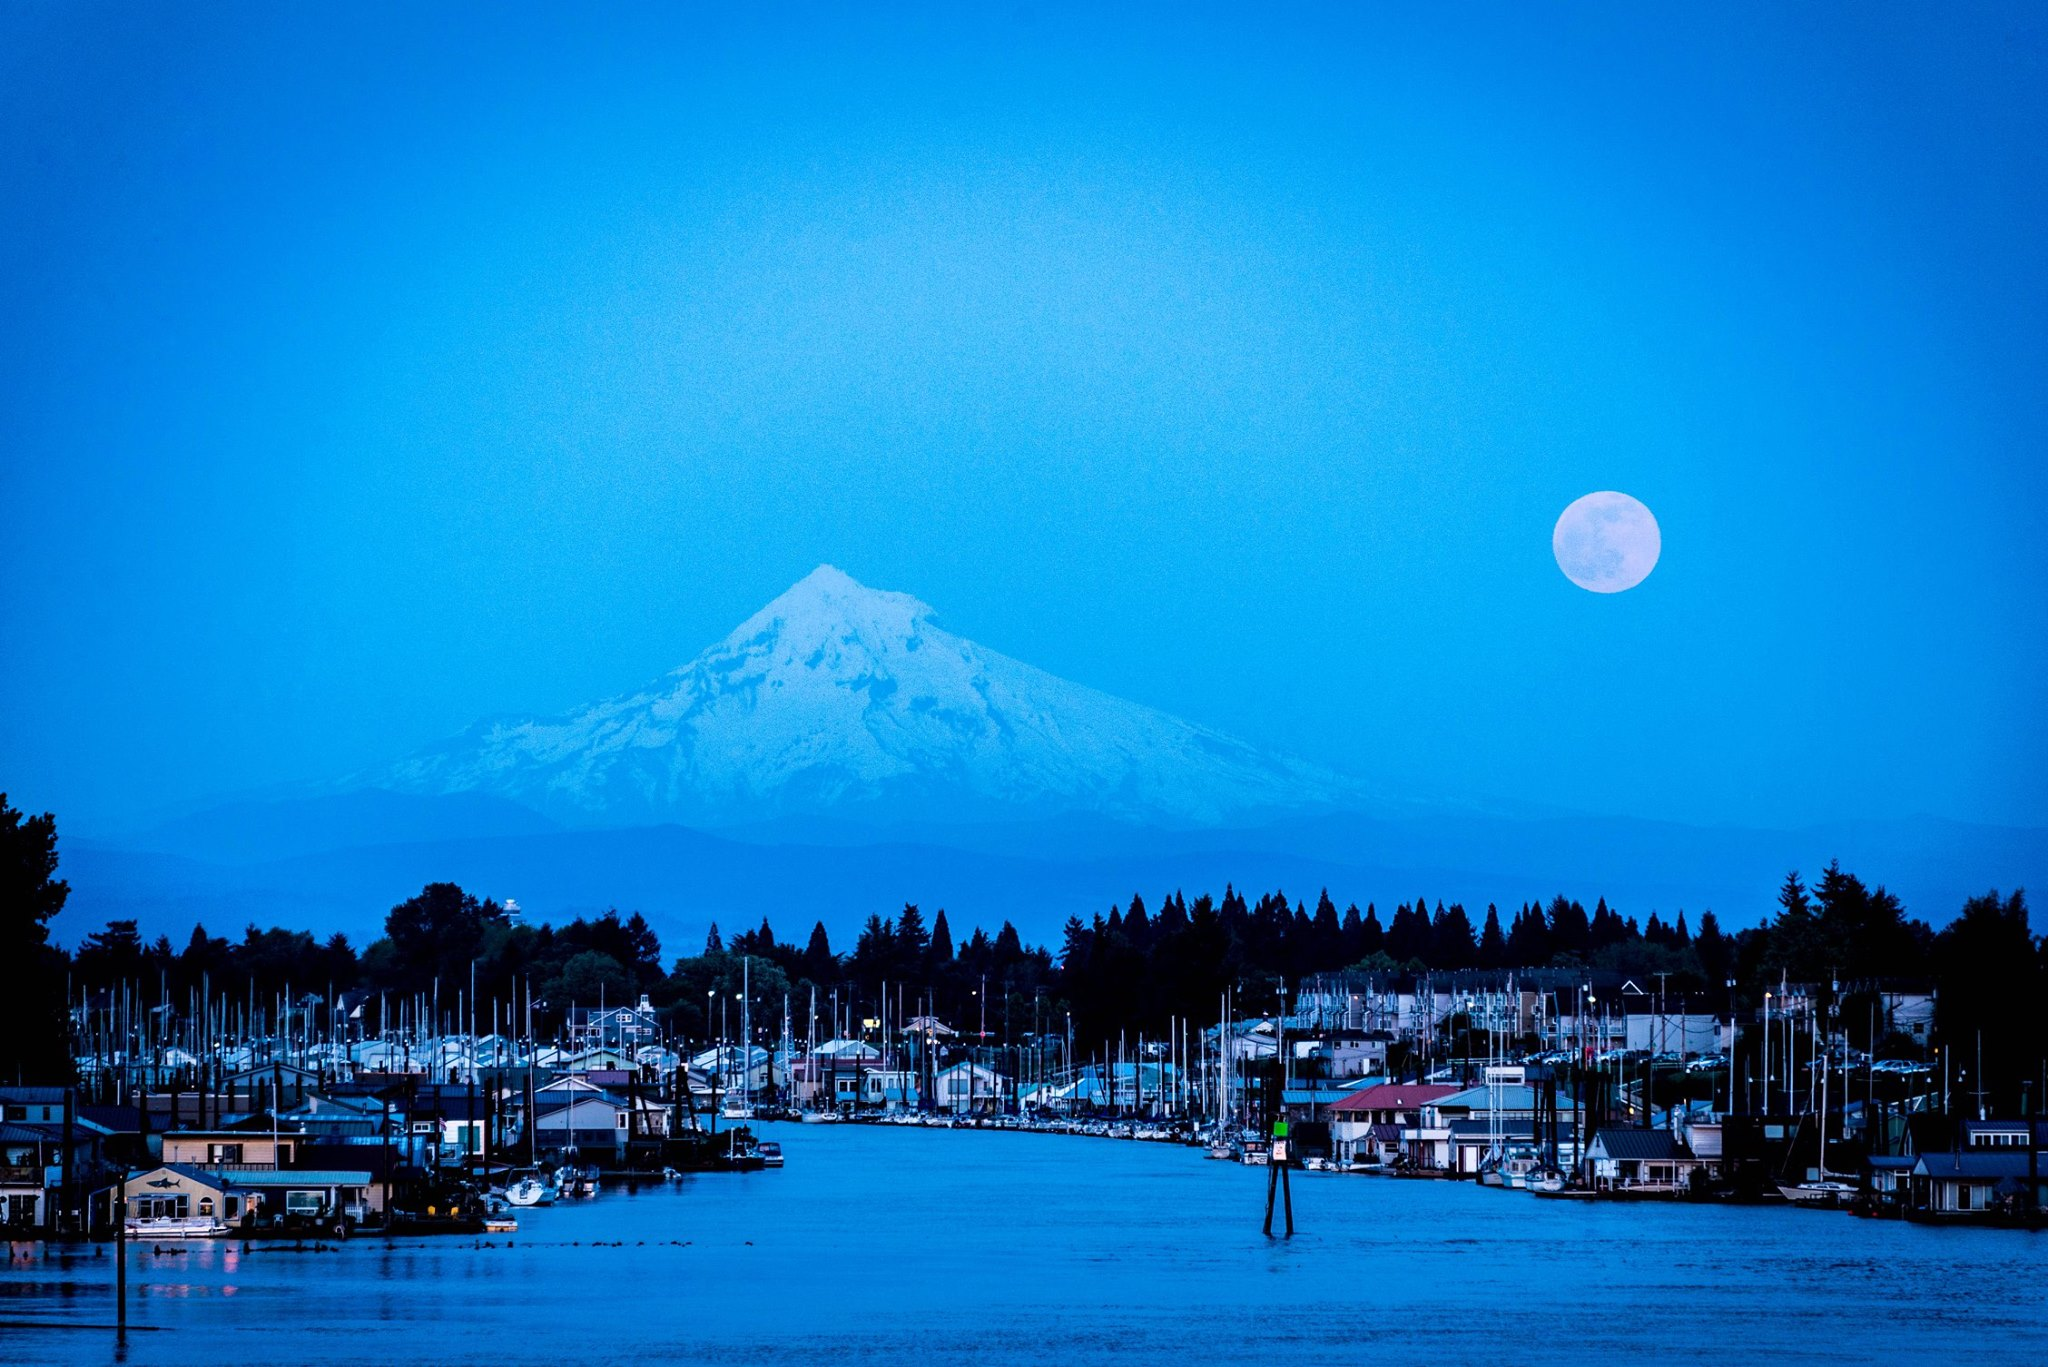 Full moon over Mt. Hood, OR